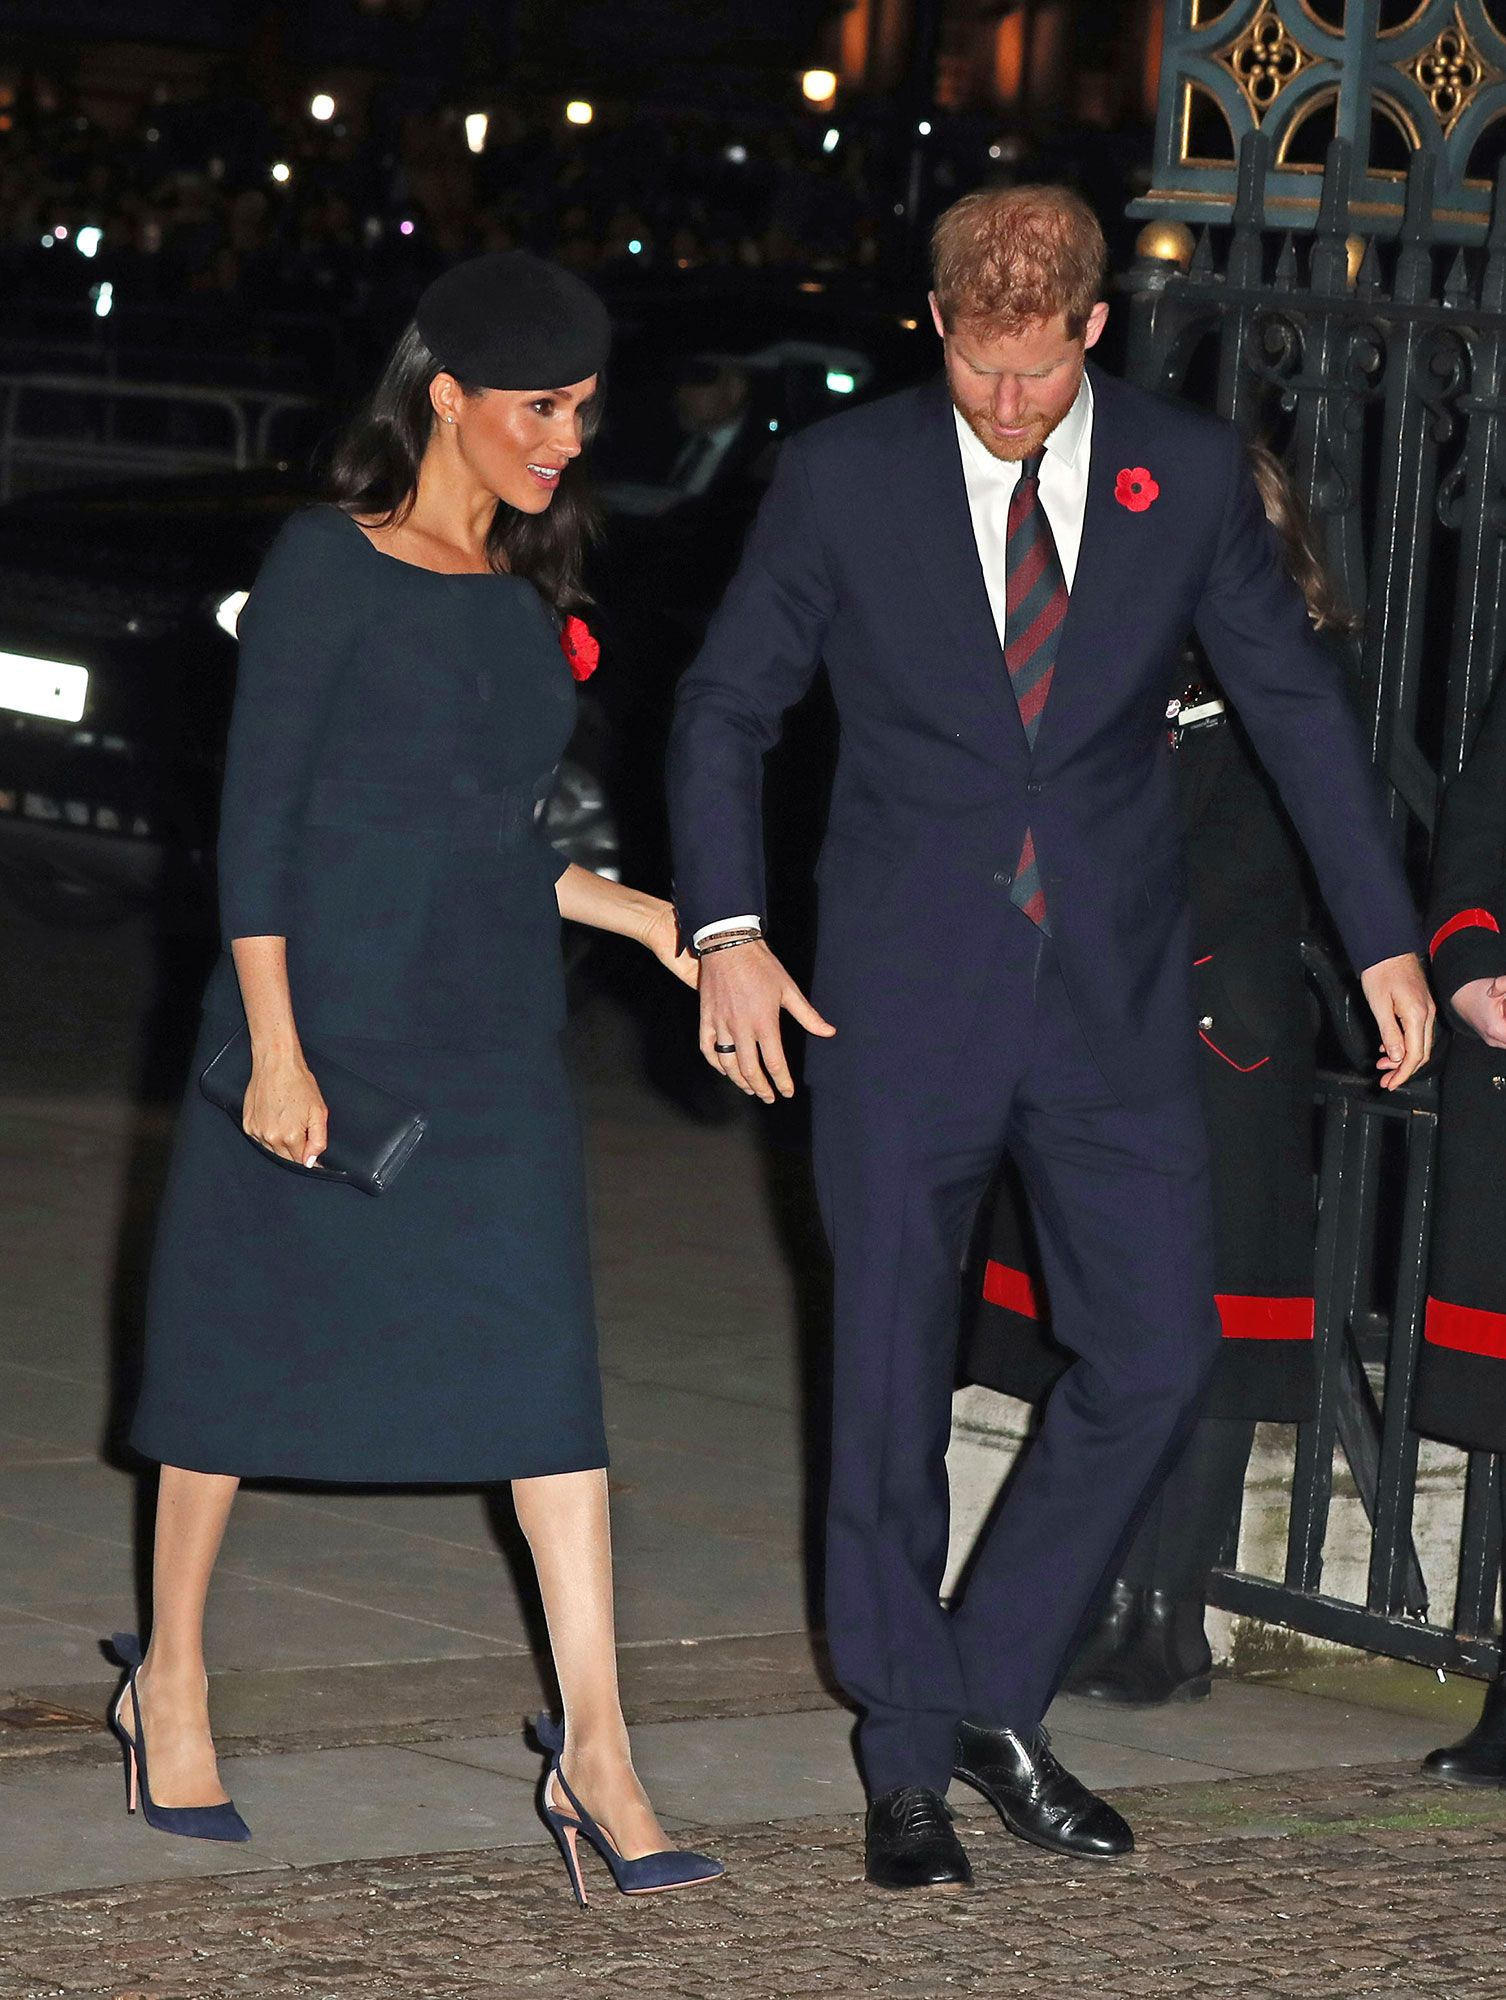 80s wedding decorations november 2018 Pregnant Meghan Markle Shows Growing Baby Bump While Holding Hands